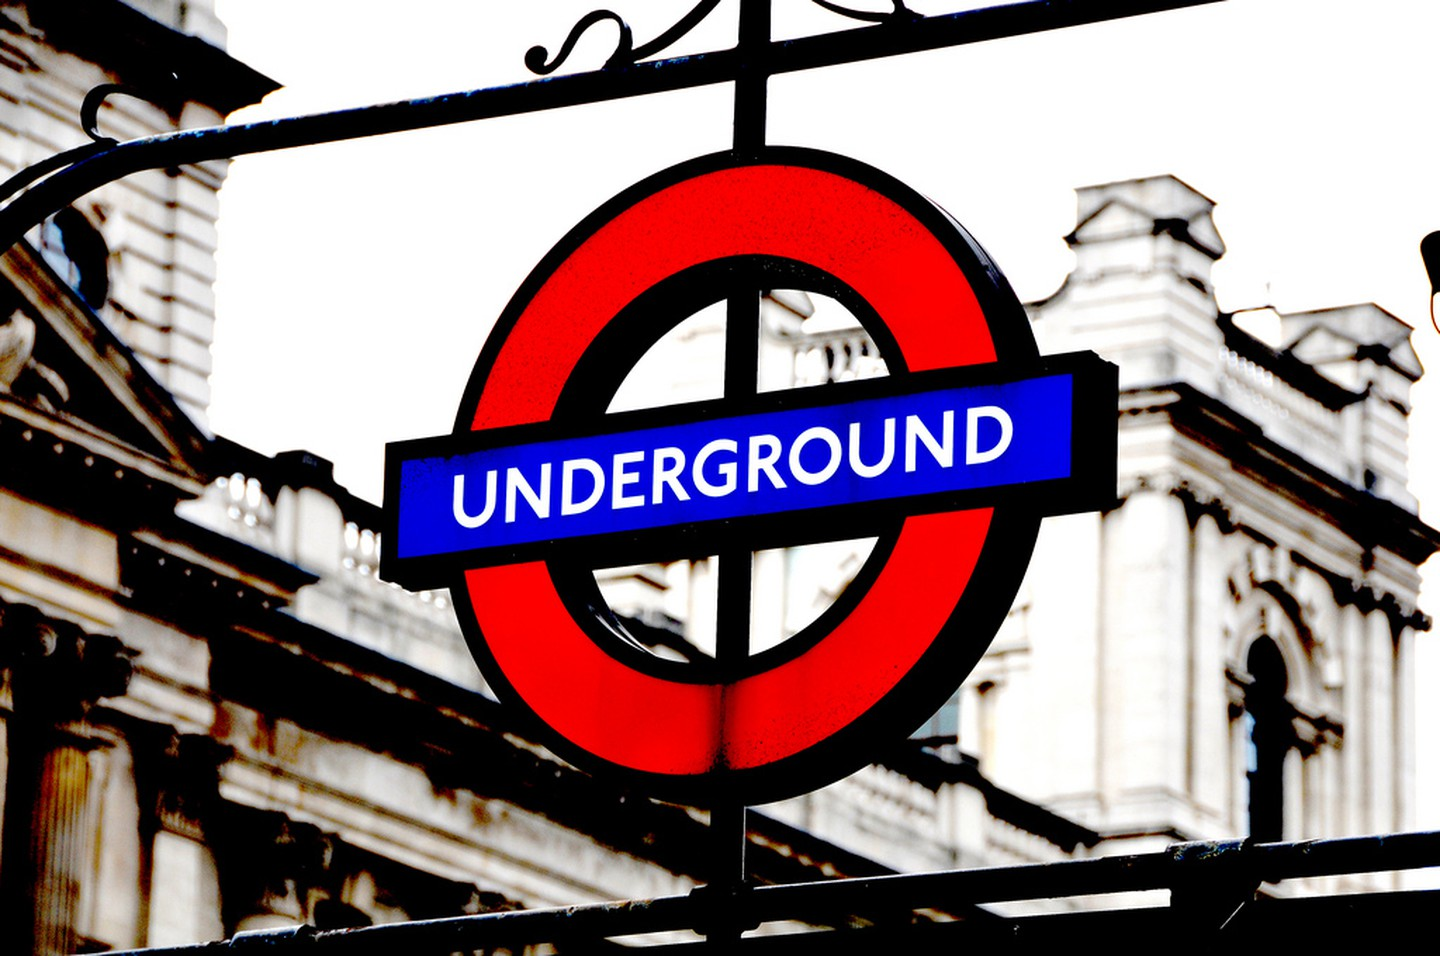 London Underground - Since 1908 the red circle with a blue line through it has been an indication of the entrance into the London underground system. This sign is so internationally recognized, that you can even buy signs from various stations from the Transport for London online shop.